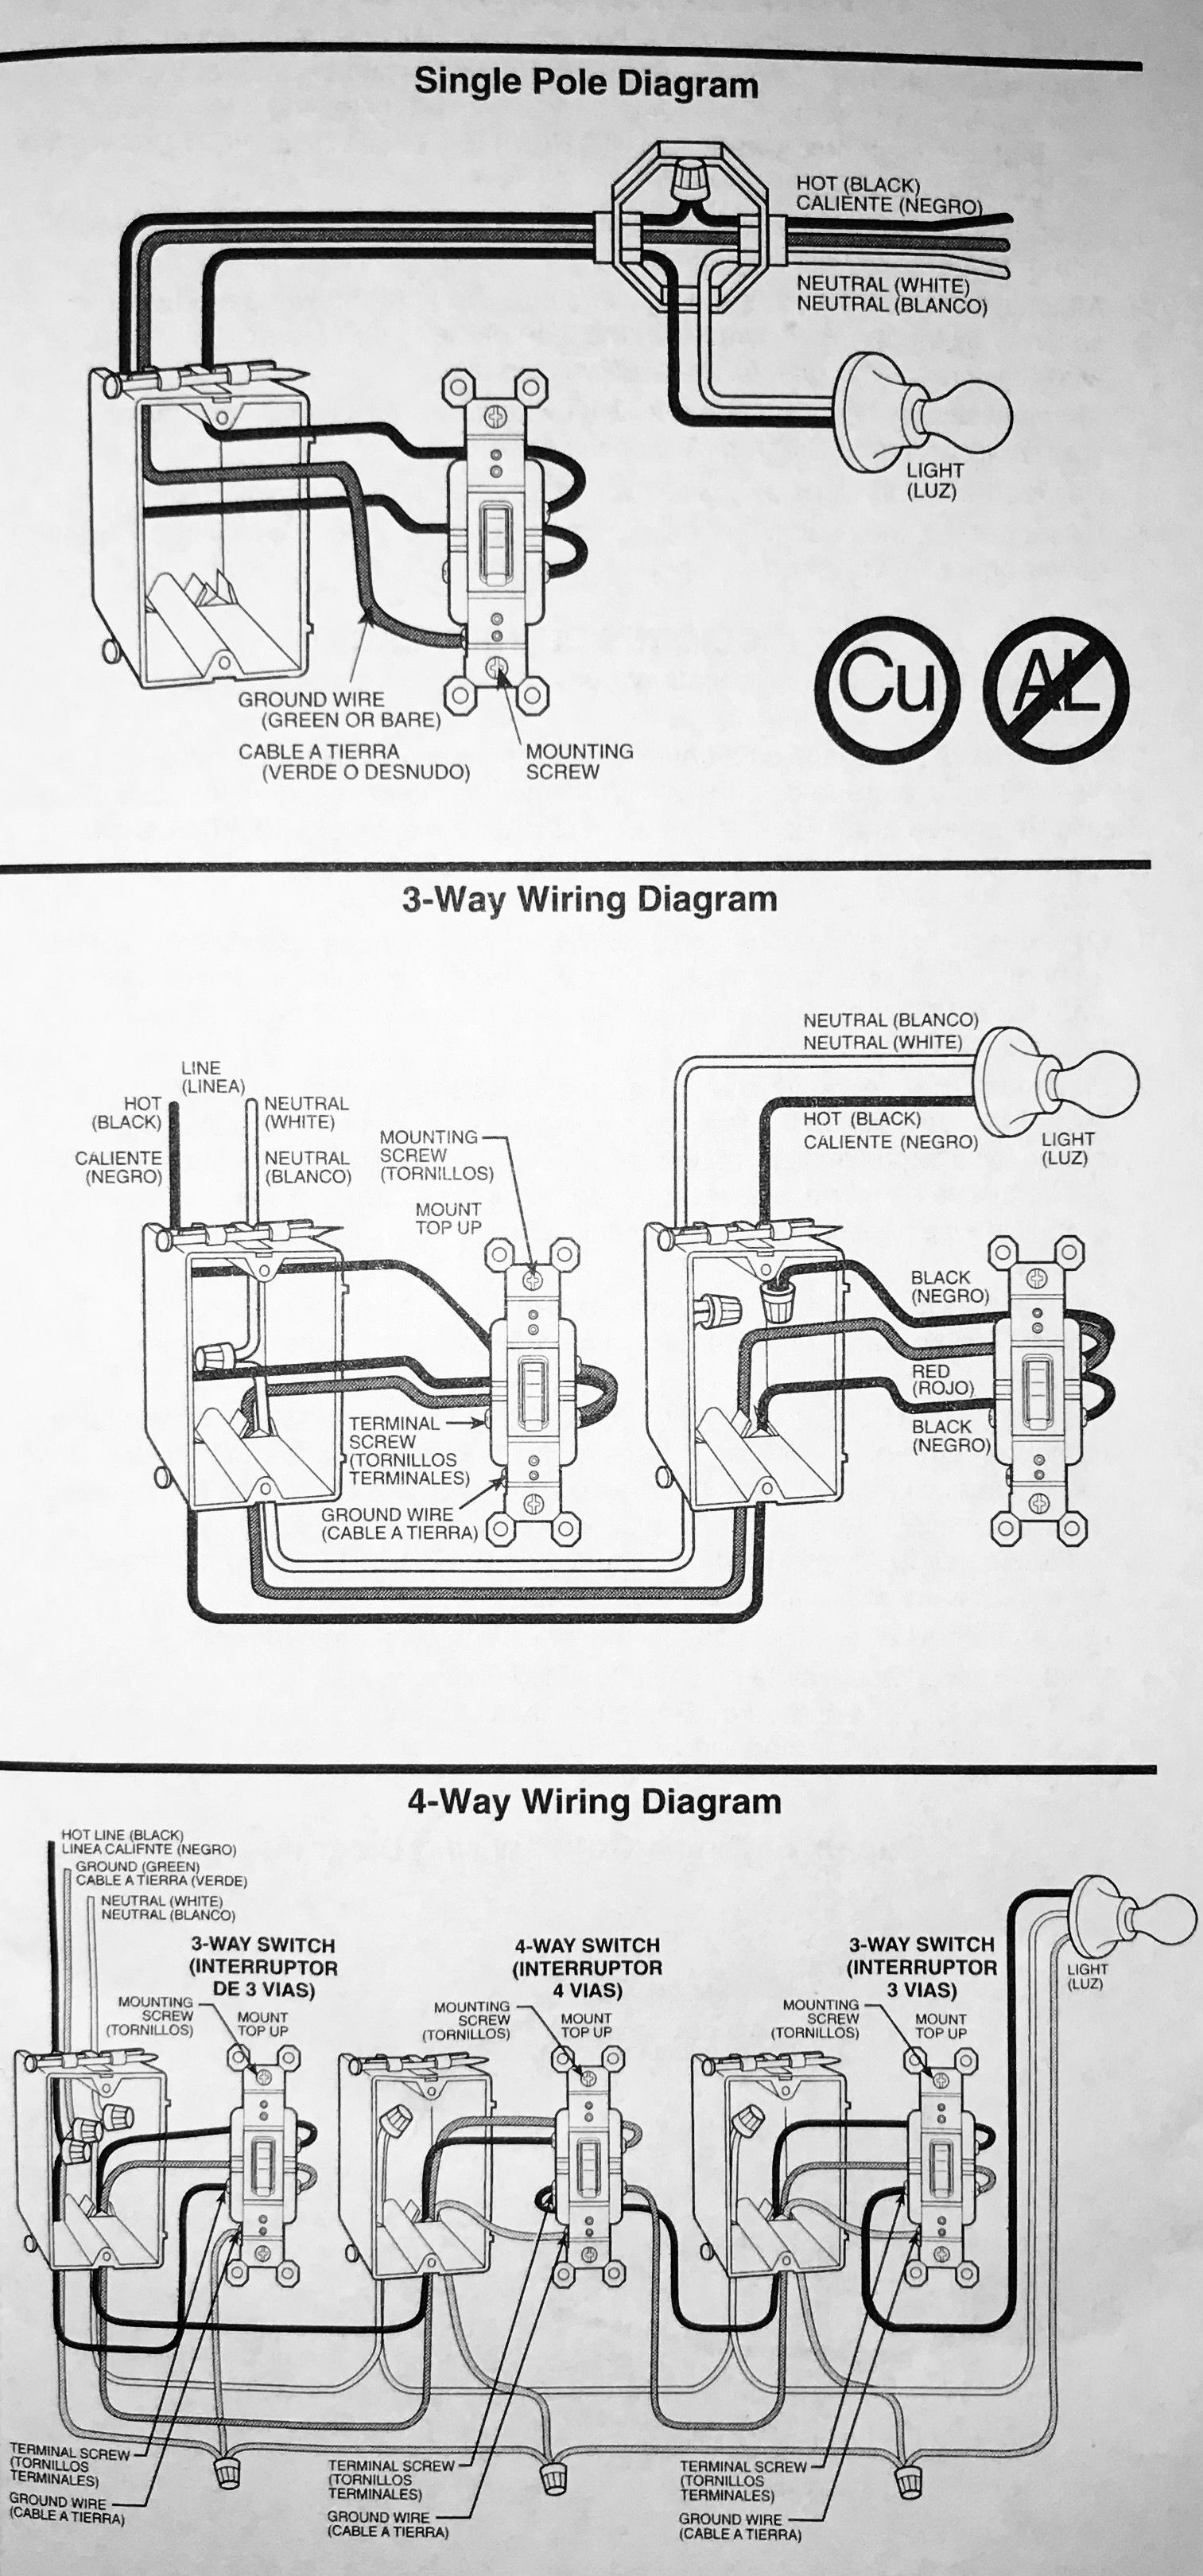 4 Way Switches Wiring Diagram